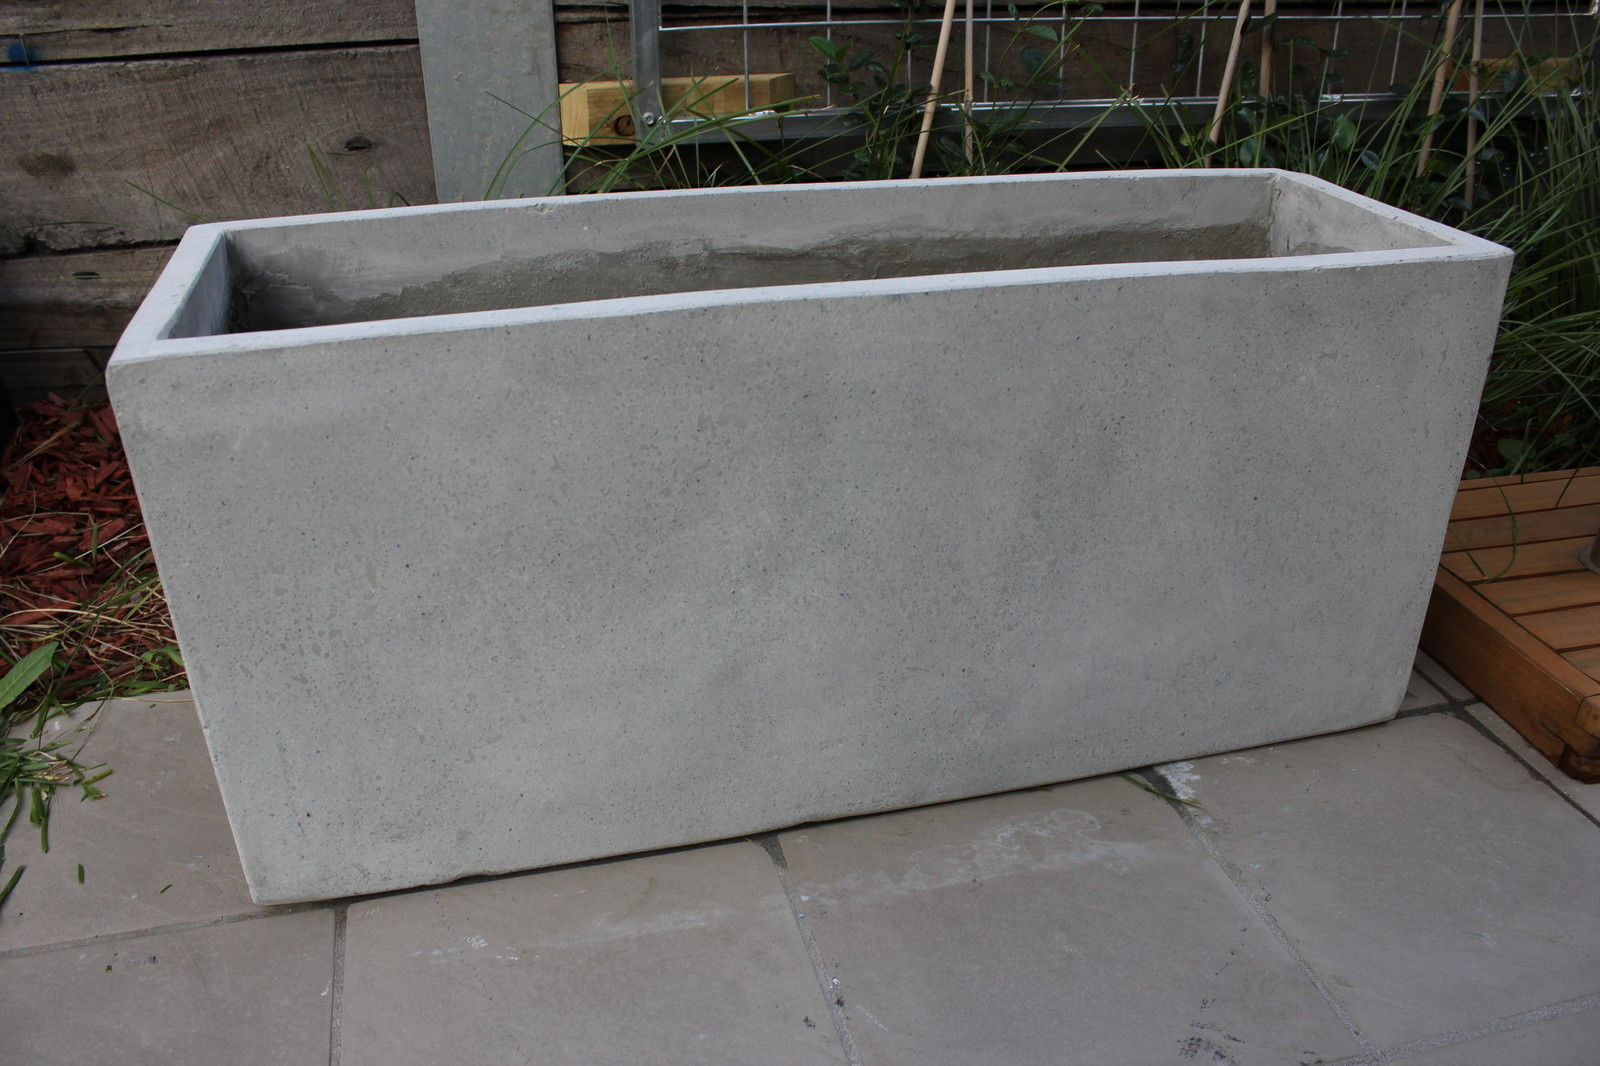 Concrete Garden Planters Garden Pots Batch Of 6 X 100cm Long Light Weight Concrete